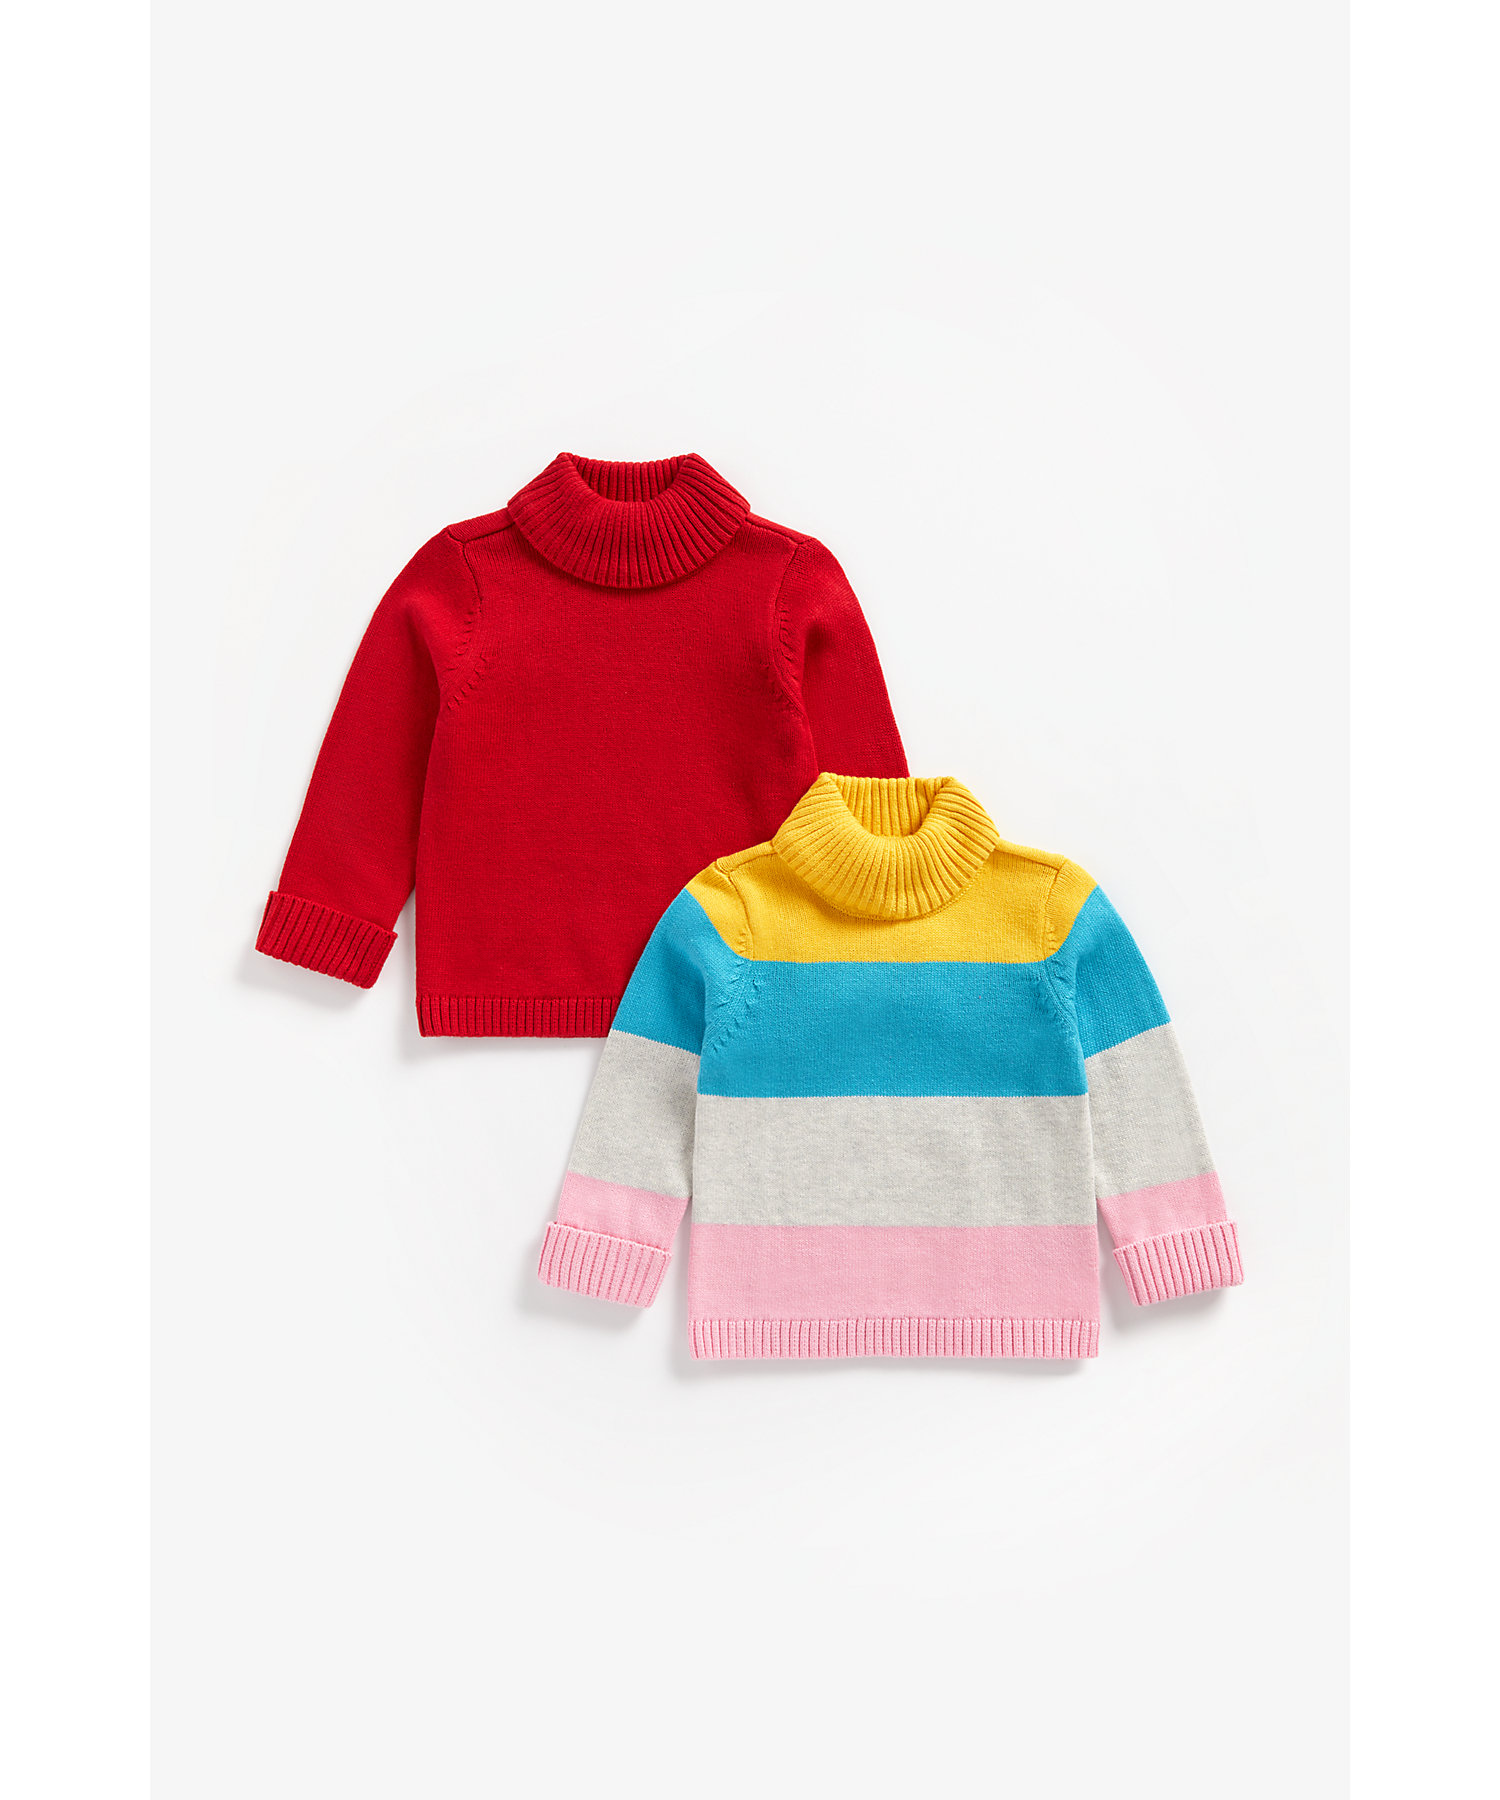 Mothercare | Girls Full Sleeves Roll Neck Sweater Block Stripes - Pack Of 2 - Multicolor